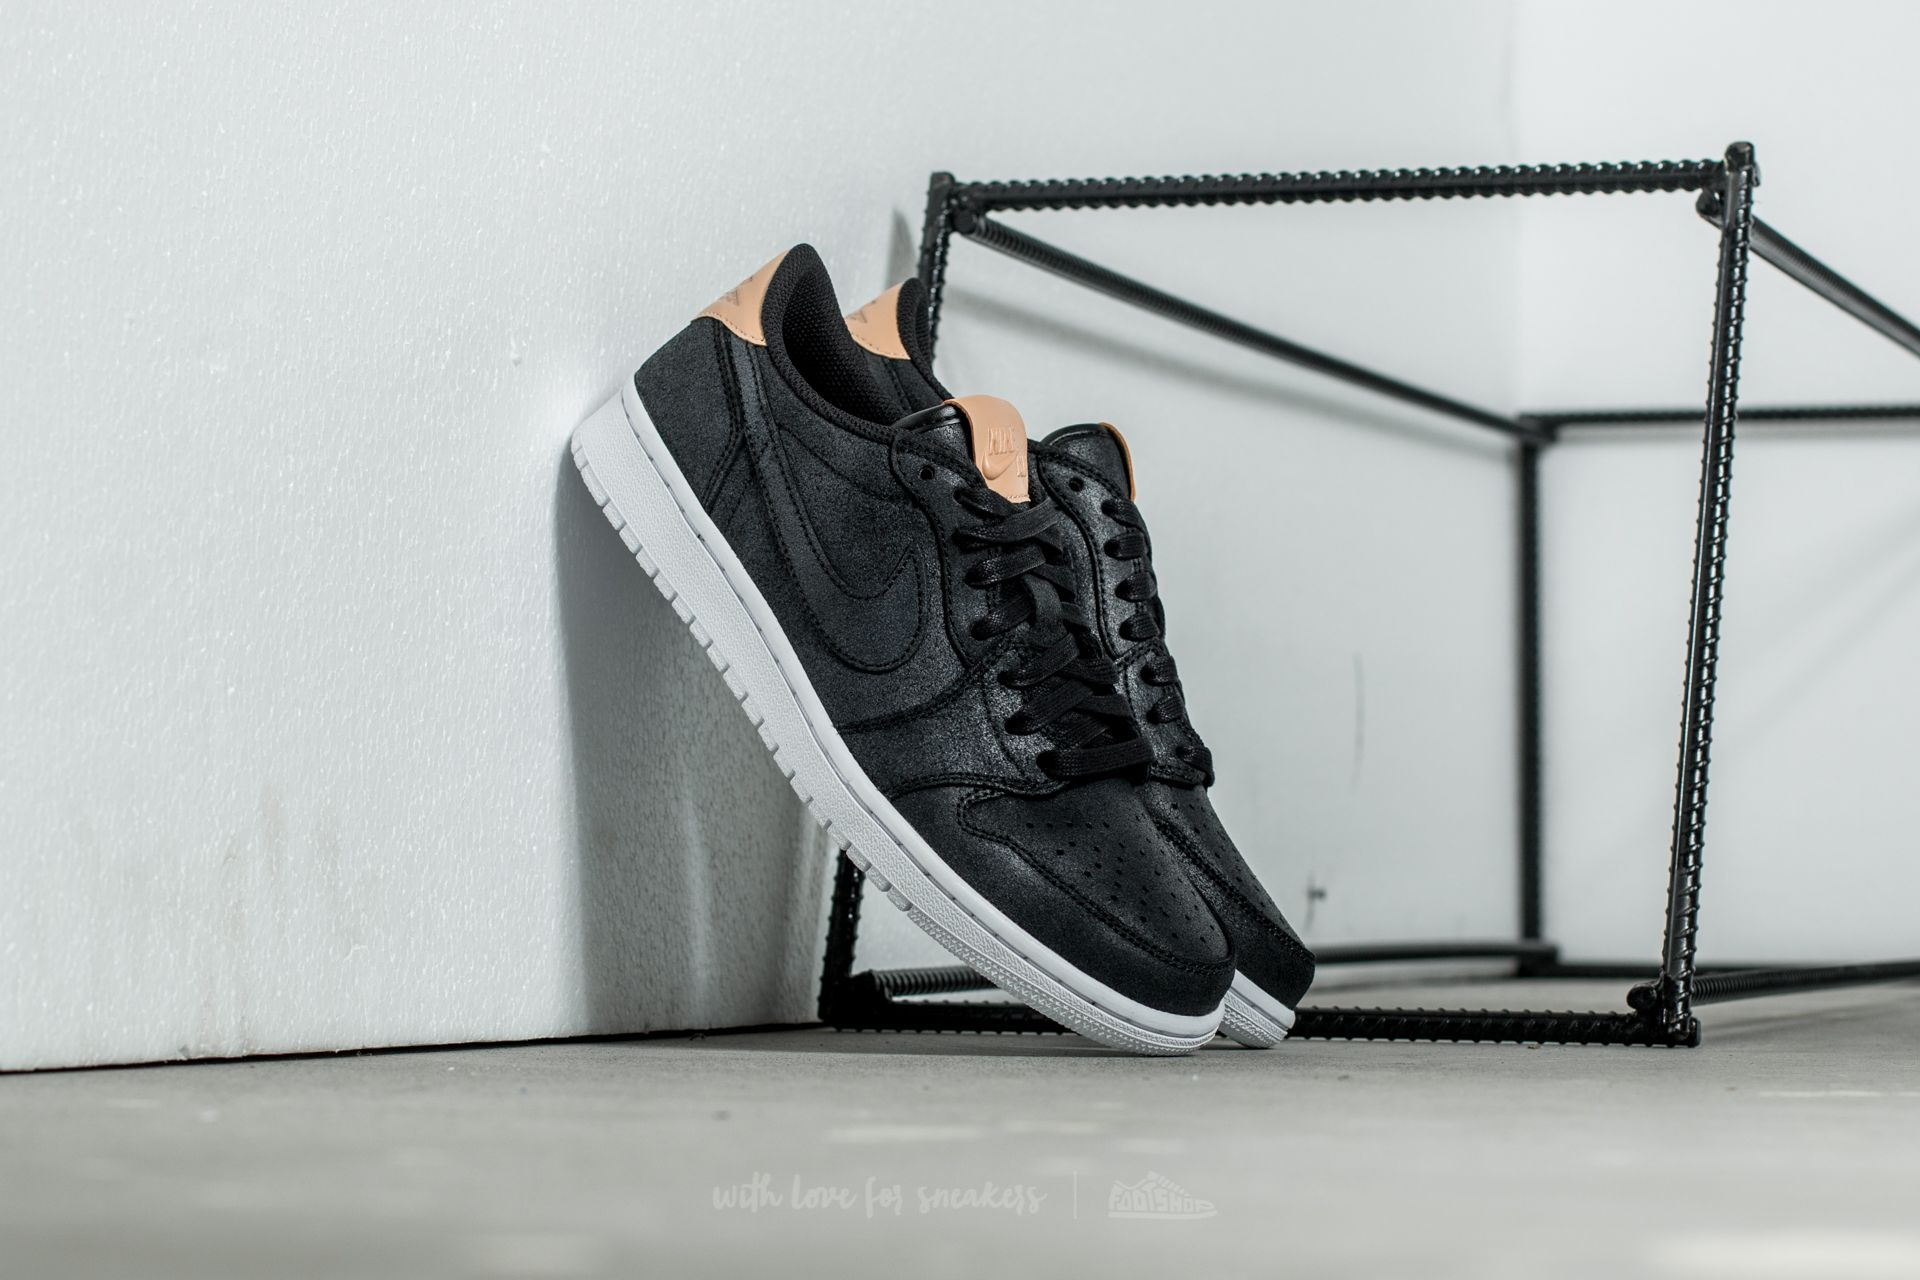 new products c014b 5ad29 Air Jordan 1 Retro Low OG Premium Black/ Vachetta Tan-White ...